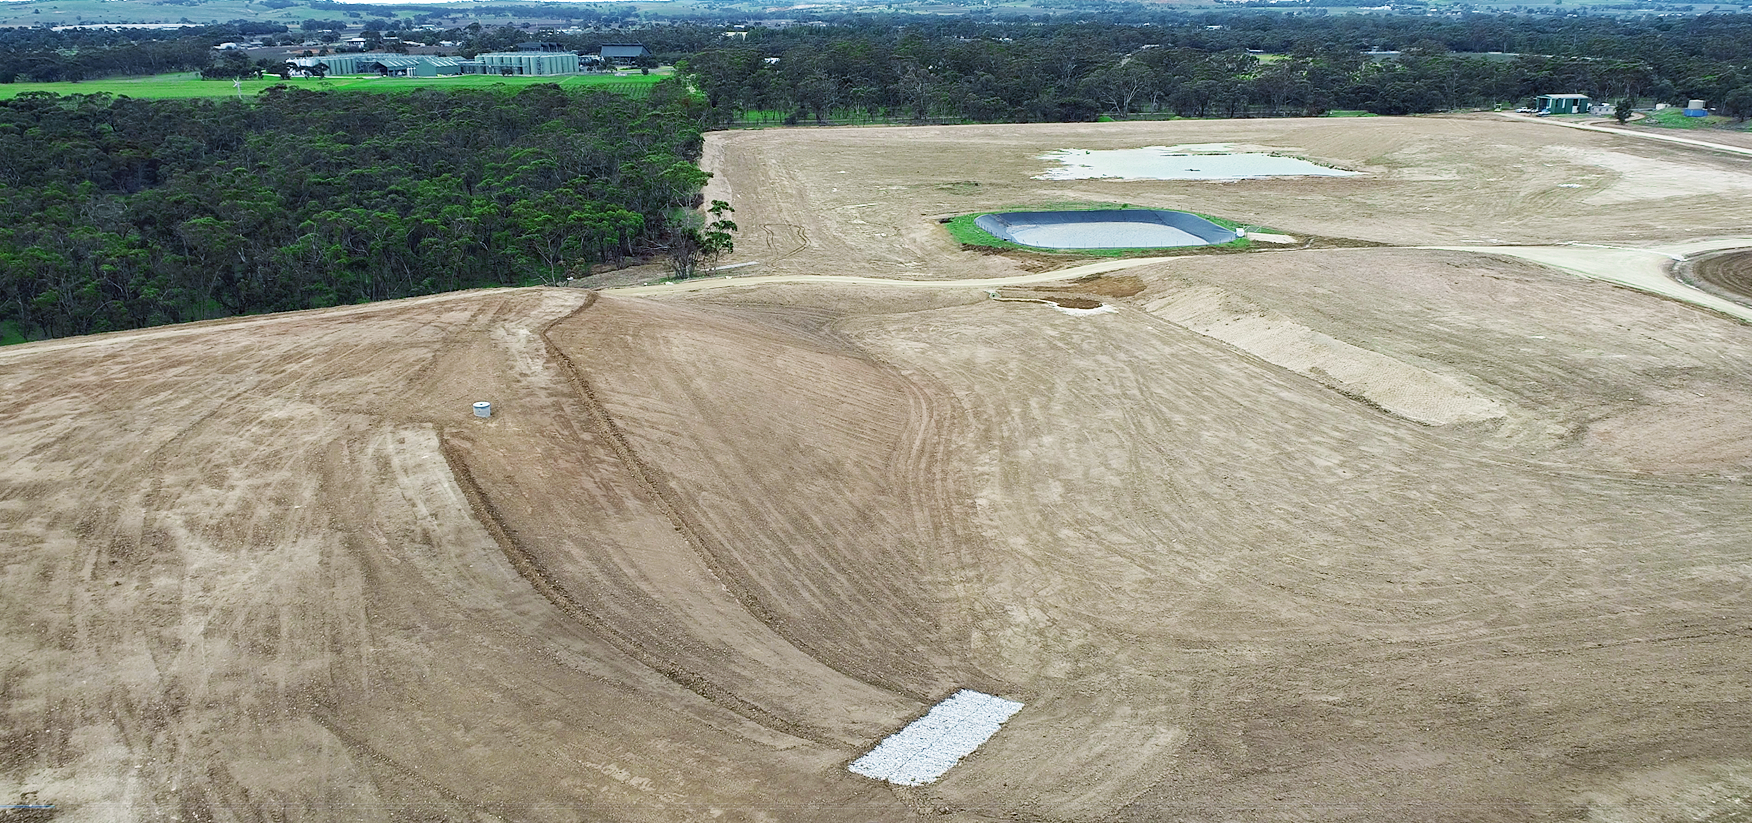 northern area of Nuriootpa Landfill in July 2020, immediately following completion of rehabilitation works